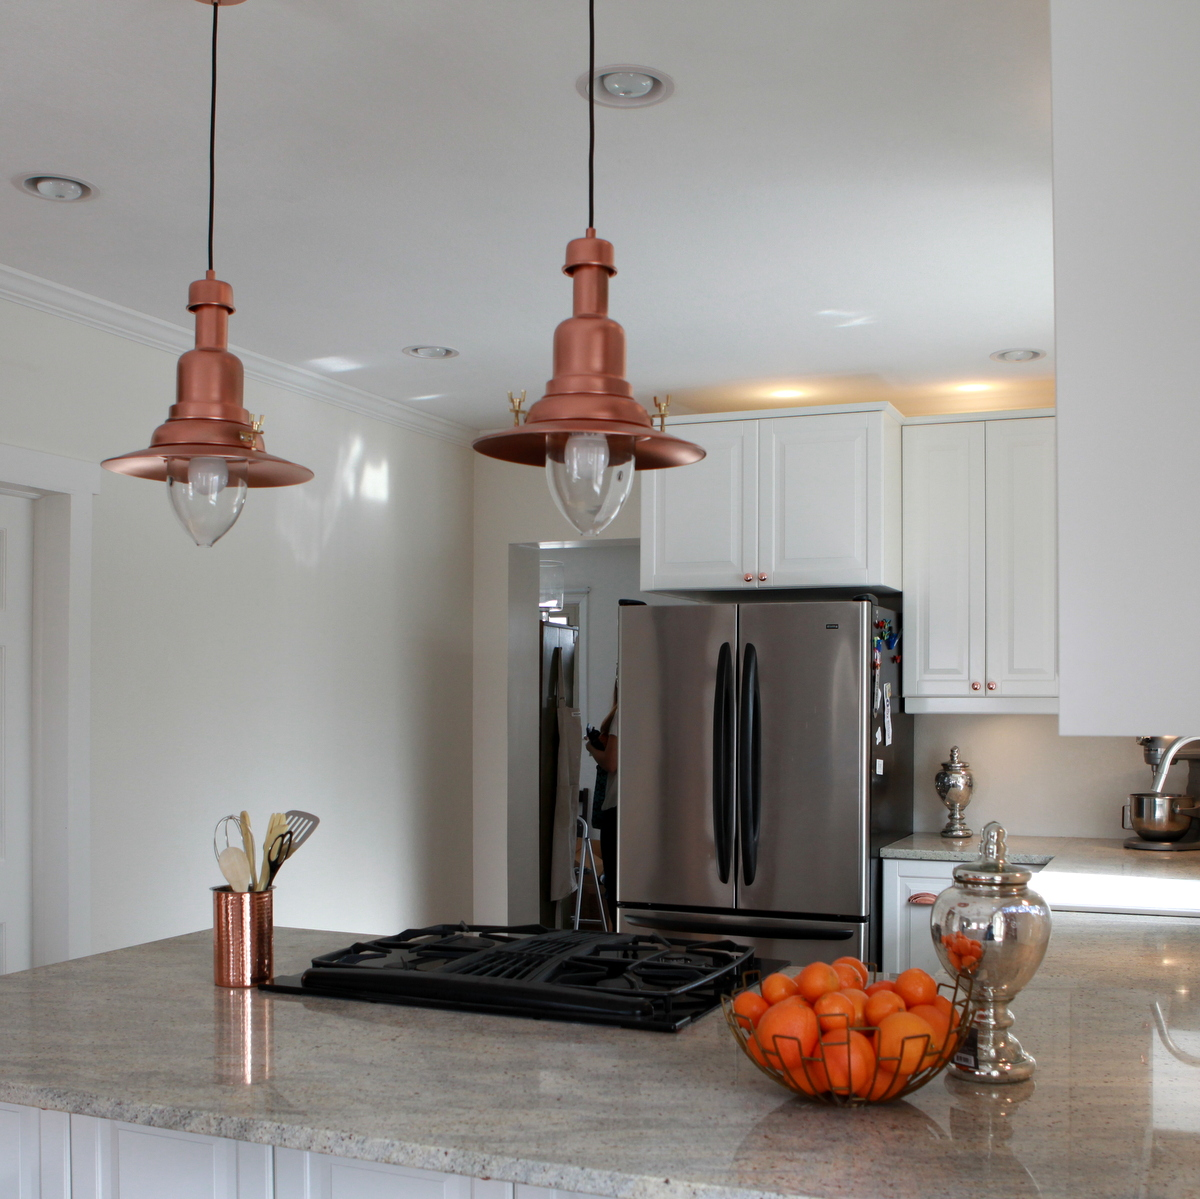 copper barn light ikea hack ikea kitchen lighting IKEA hack how to turn an OTTAVA light into a copper barn pendant light